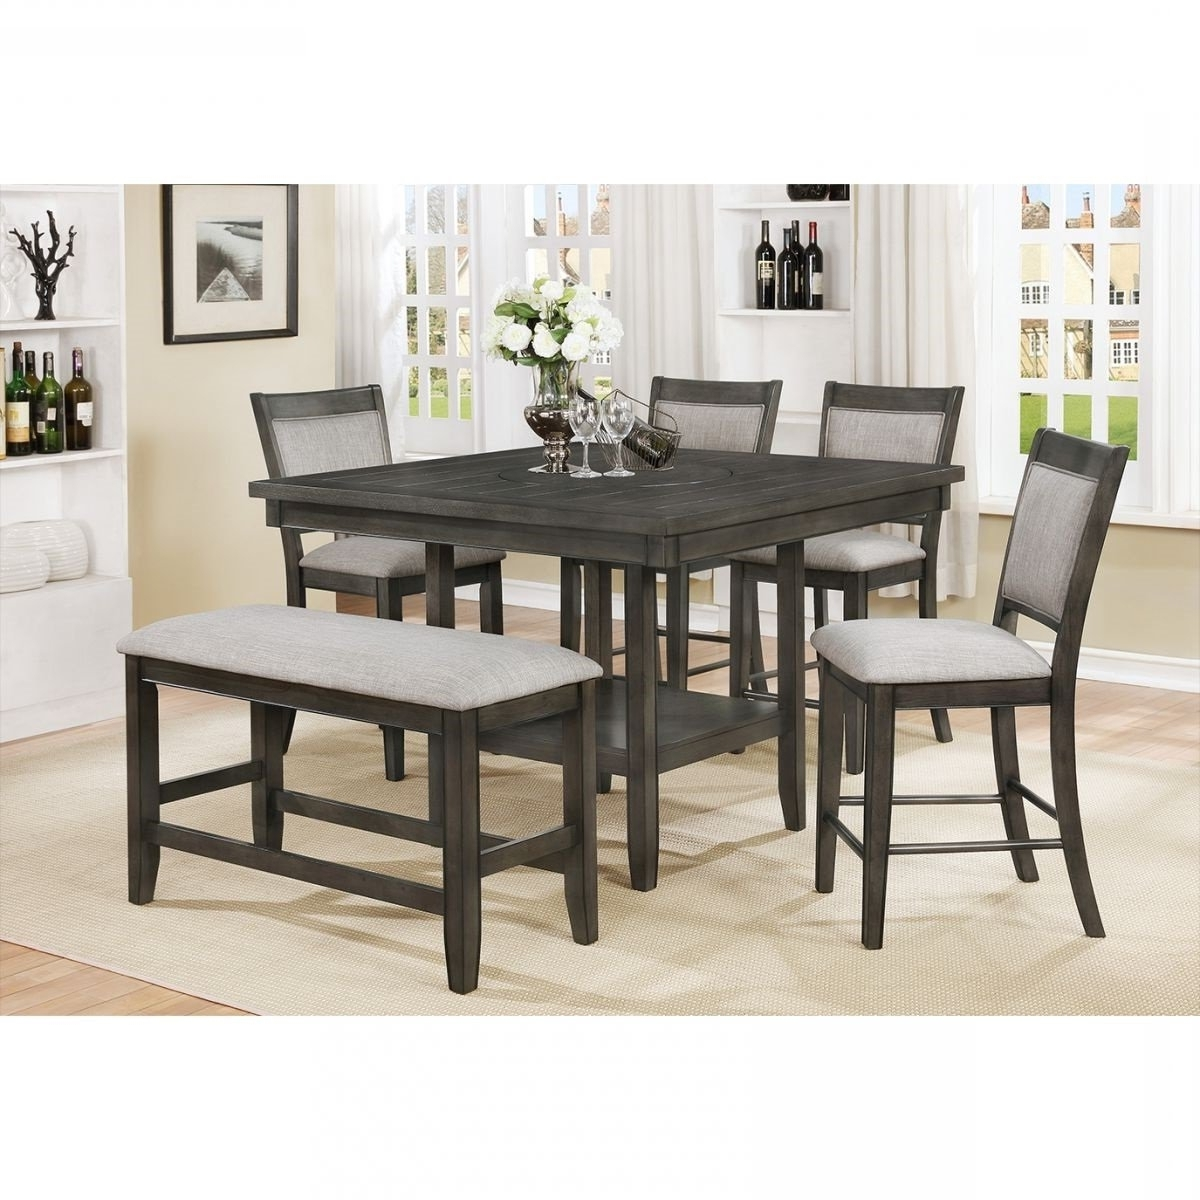 Most Popular Fulton Gray 6 Pc Counter Height Dining Room (Gallery 9 of 25)